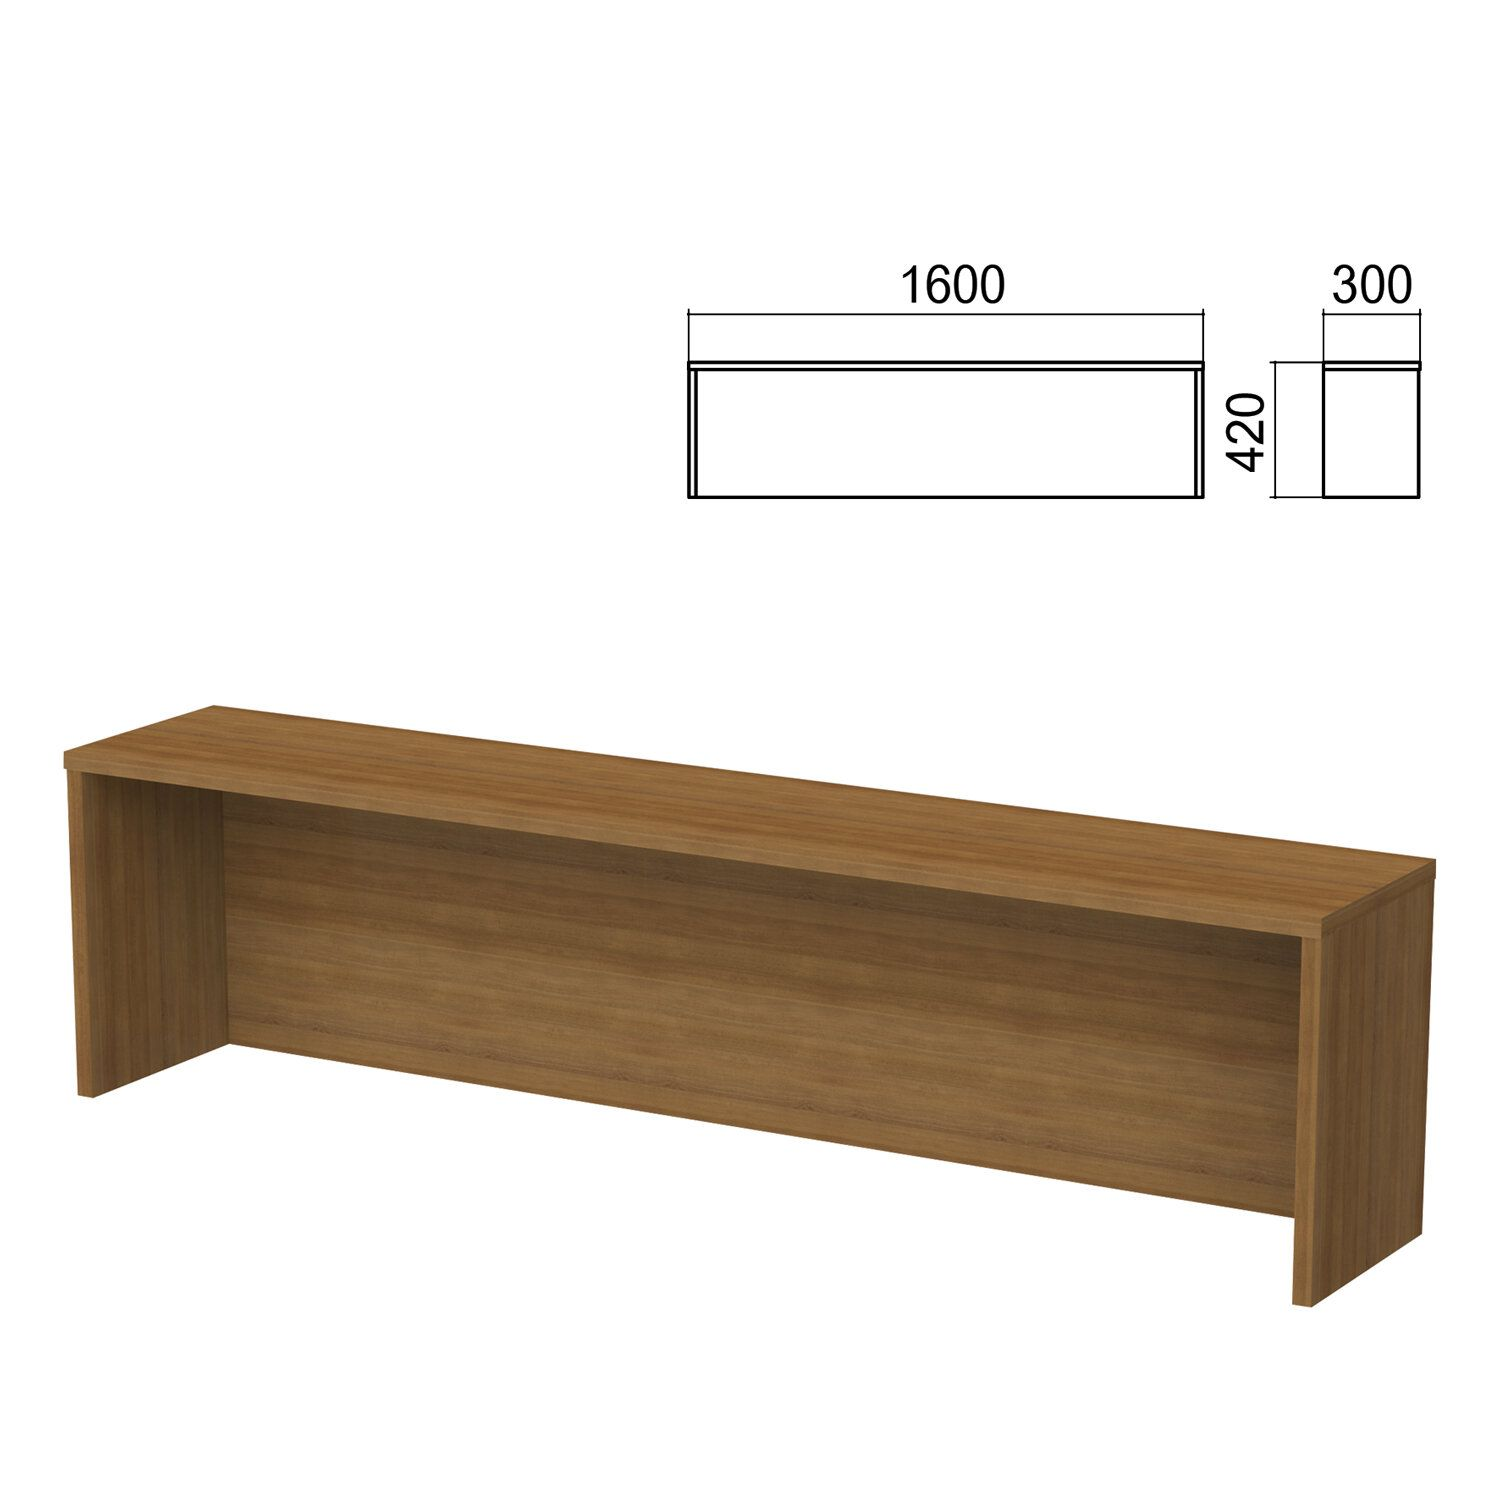 Argo table add-on, 1600 mm wide, walnut